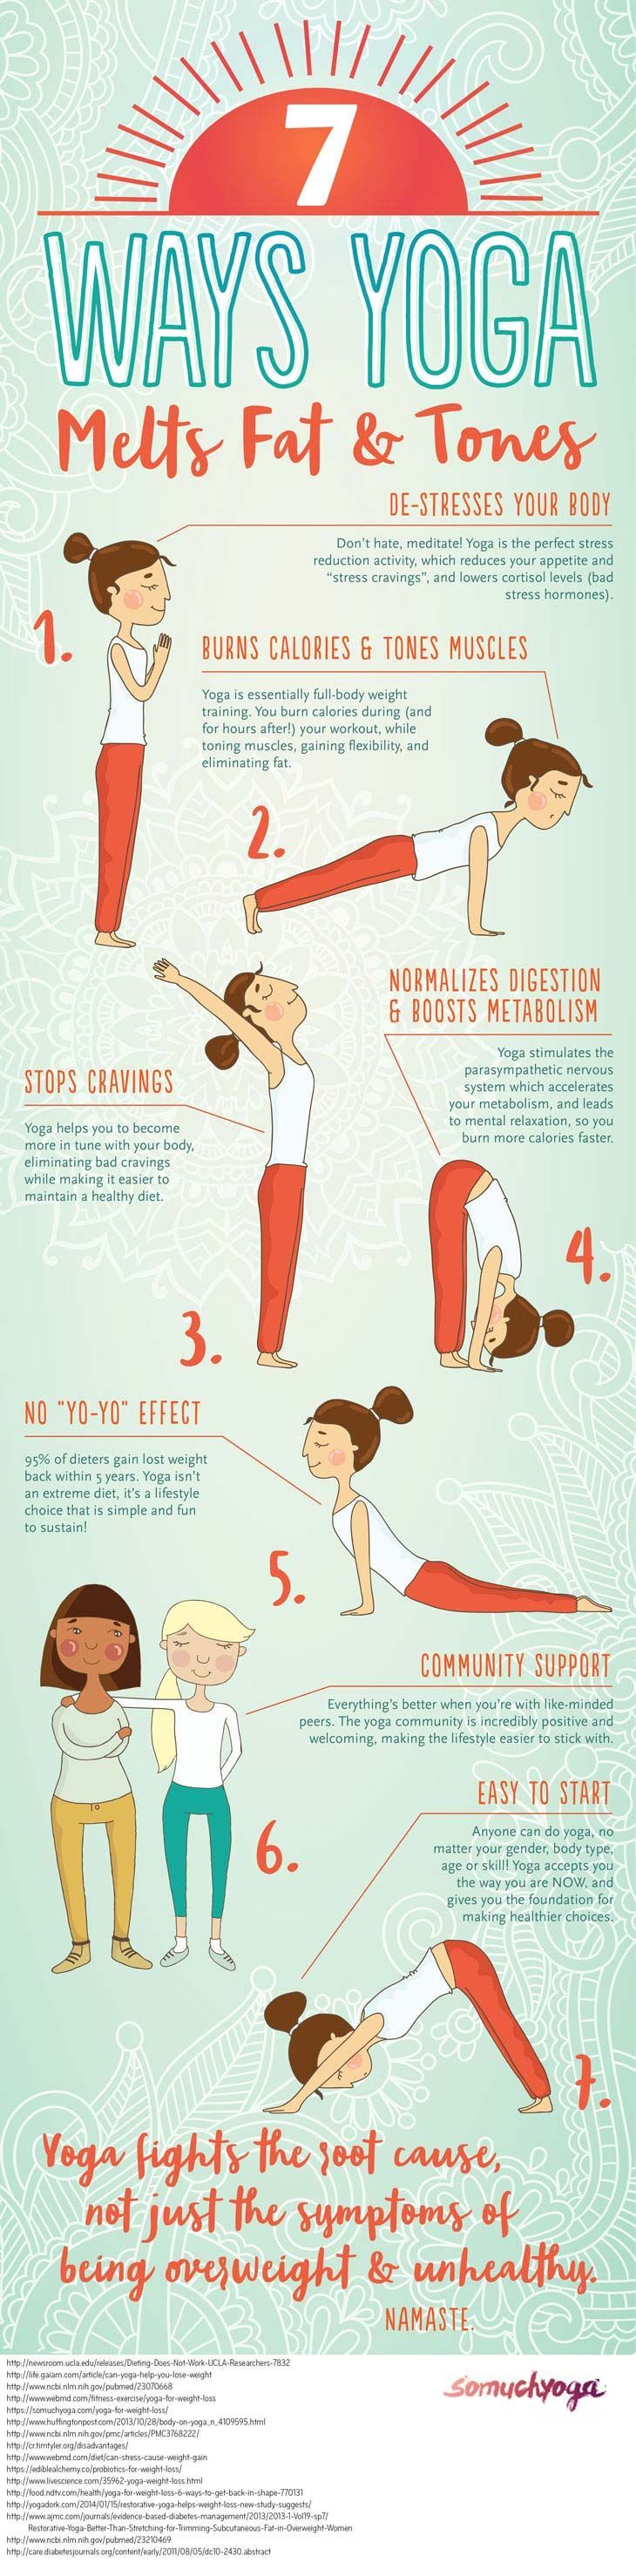 Yoga for weight loss Infographic - Yoga is the best way to lose weight! by https://somuchyoga.com